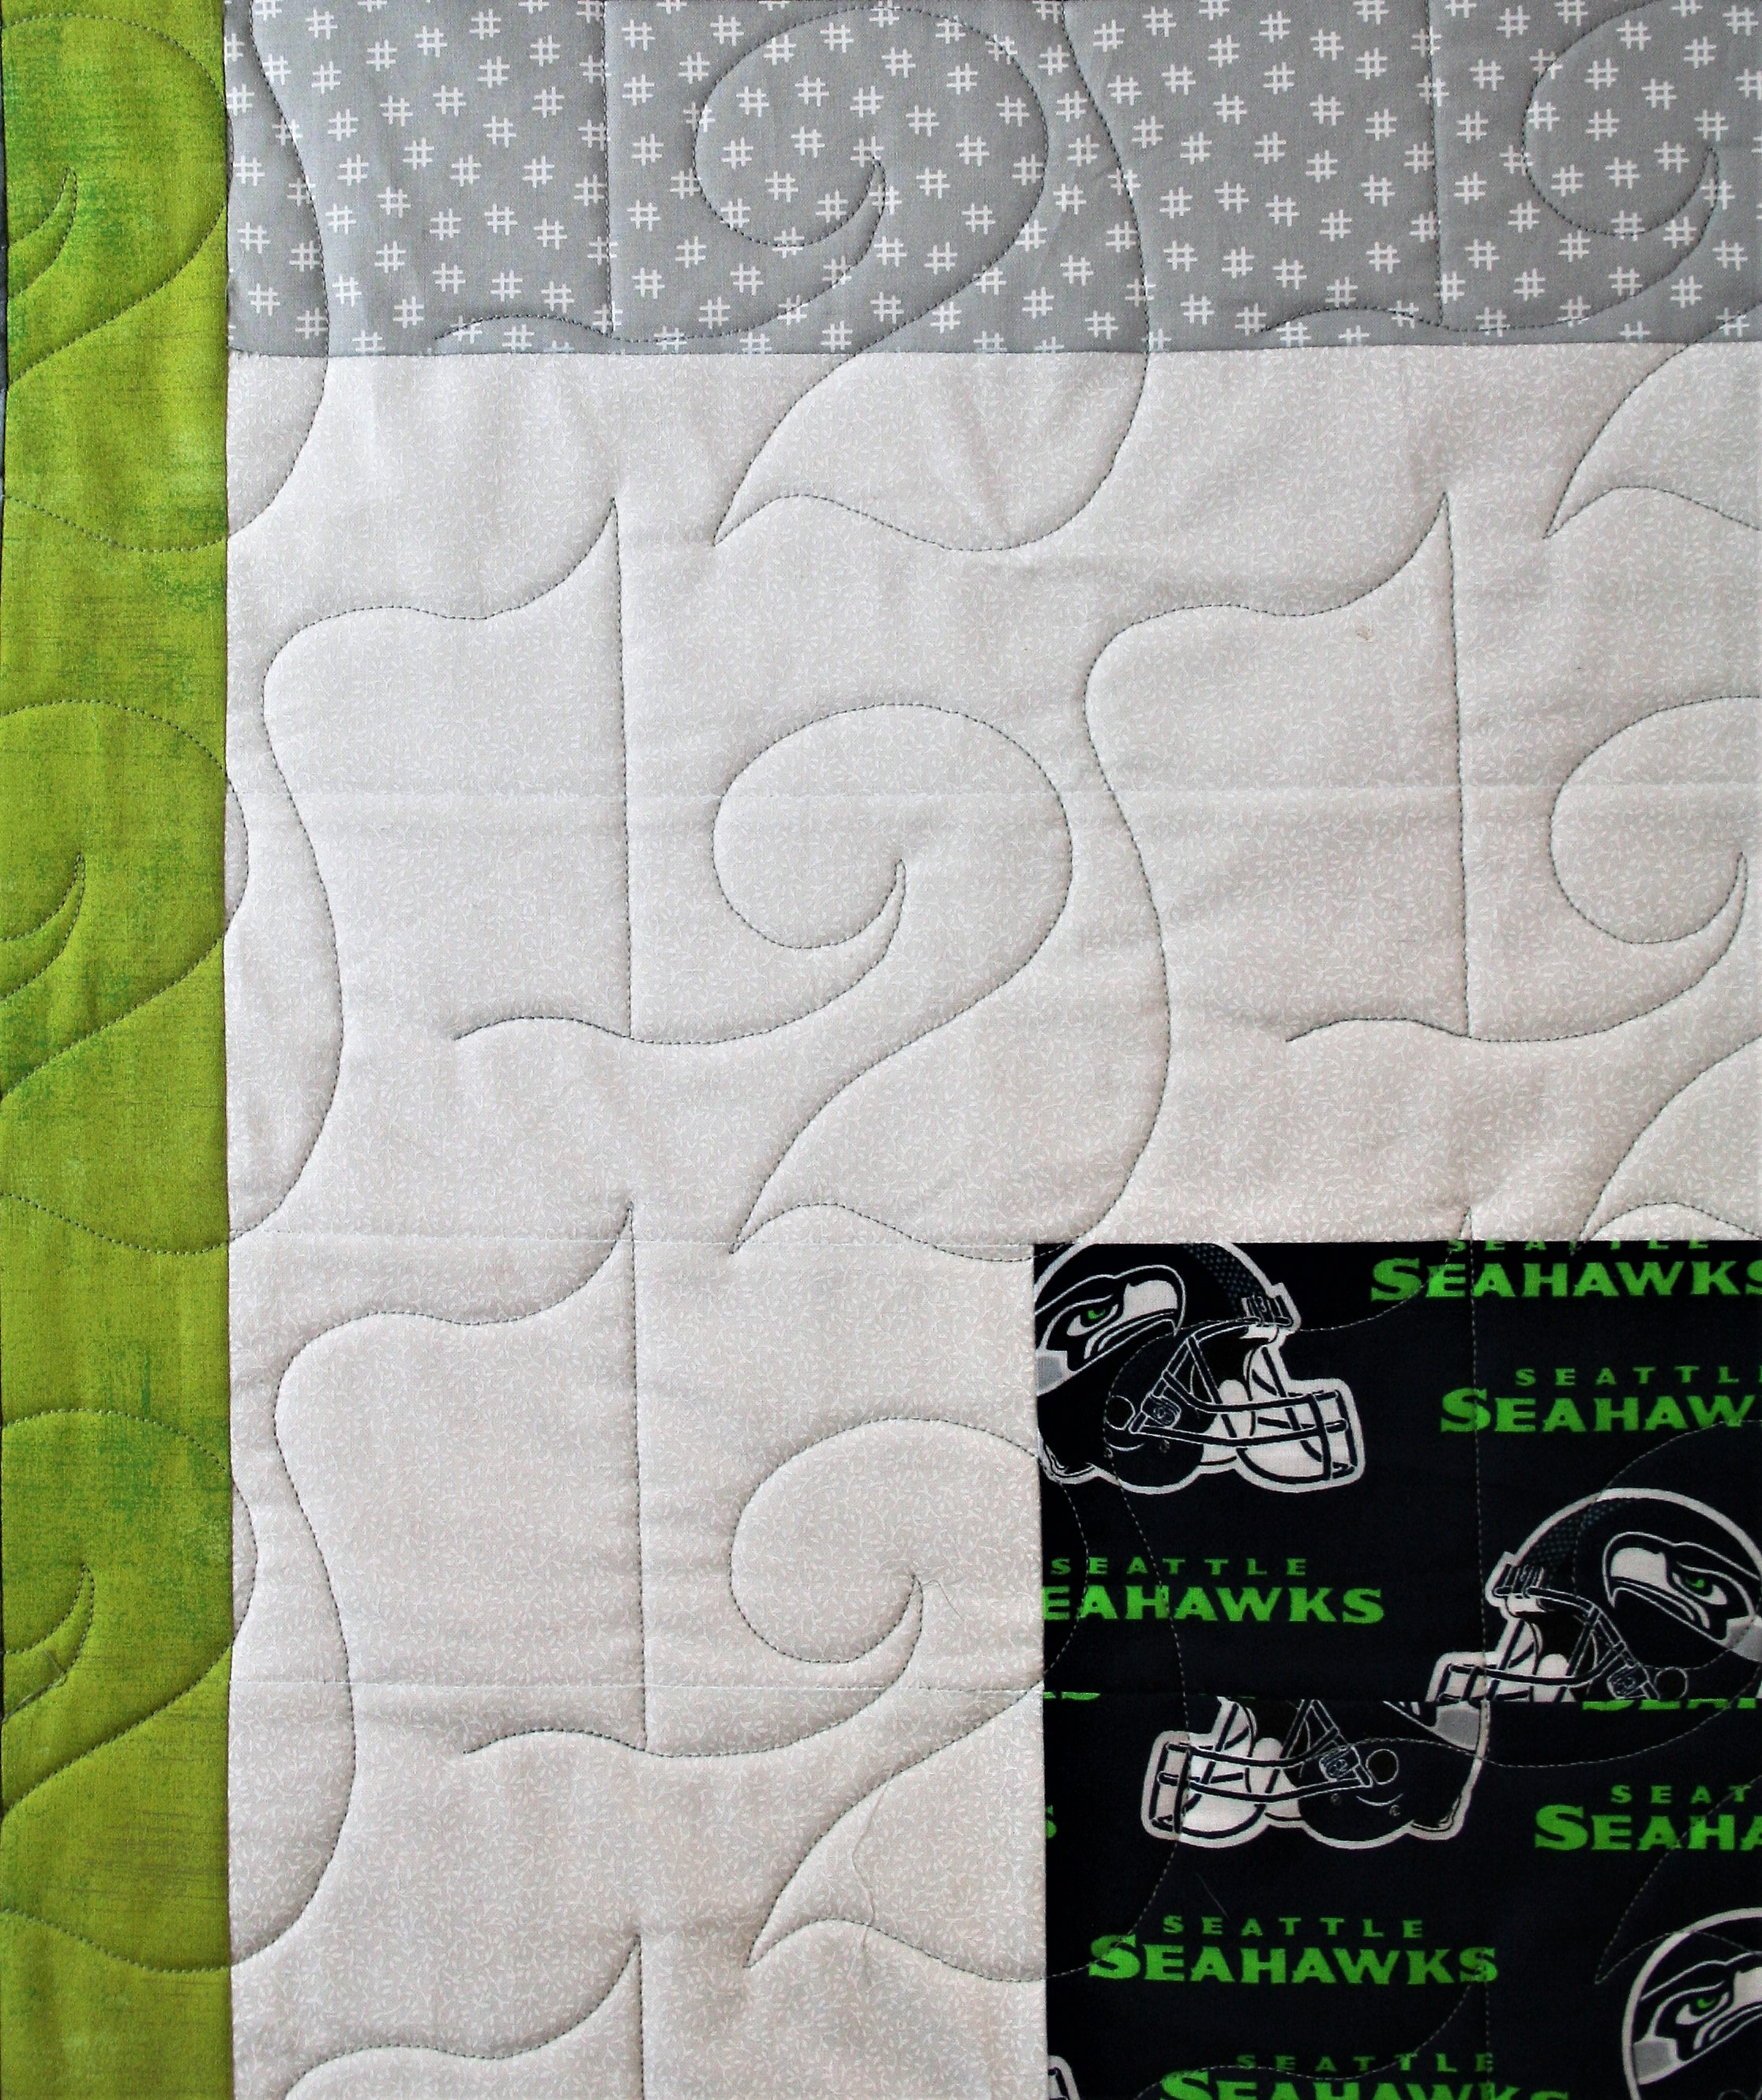 Number 12 Seahawks (close up 1)